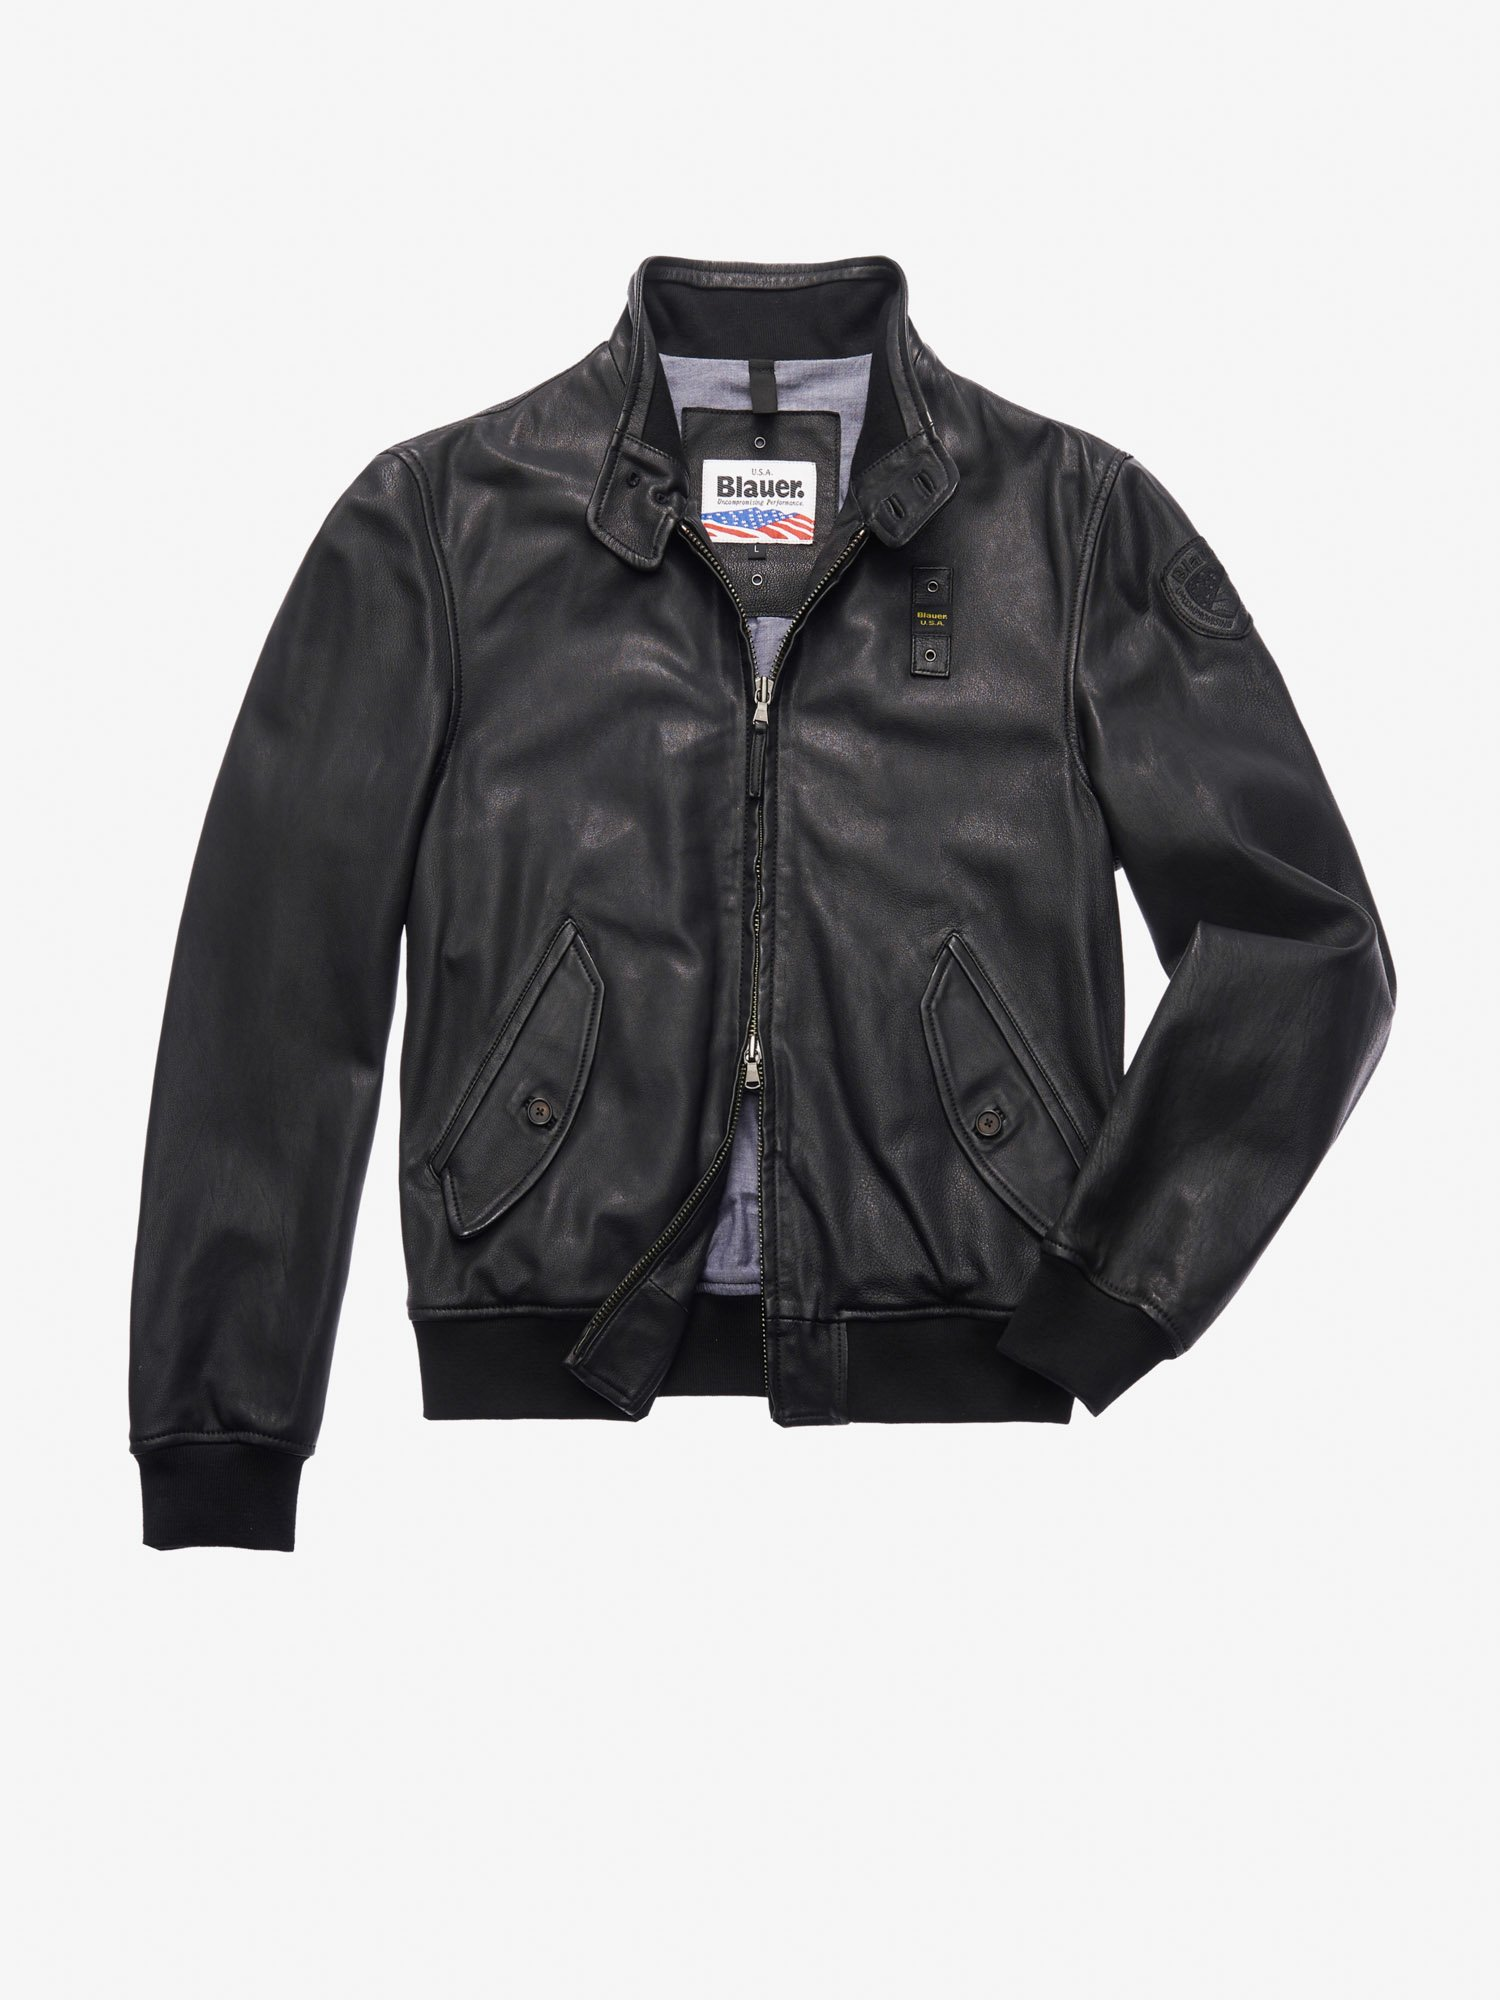 WILLIAMS LEATHER BOMBER-STYLE JACKET WITH COLLAR - Blauer